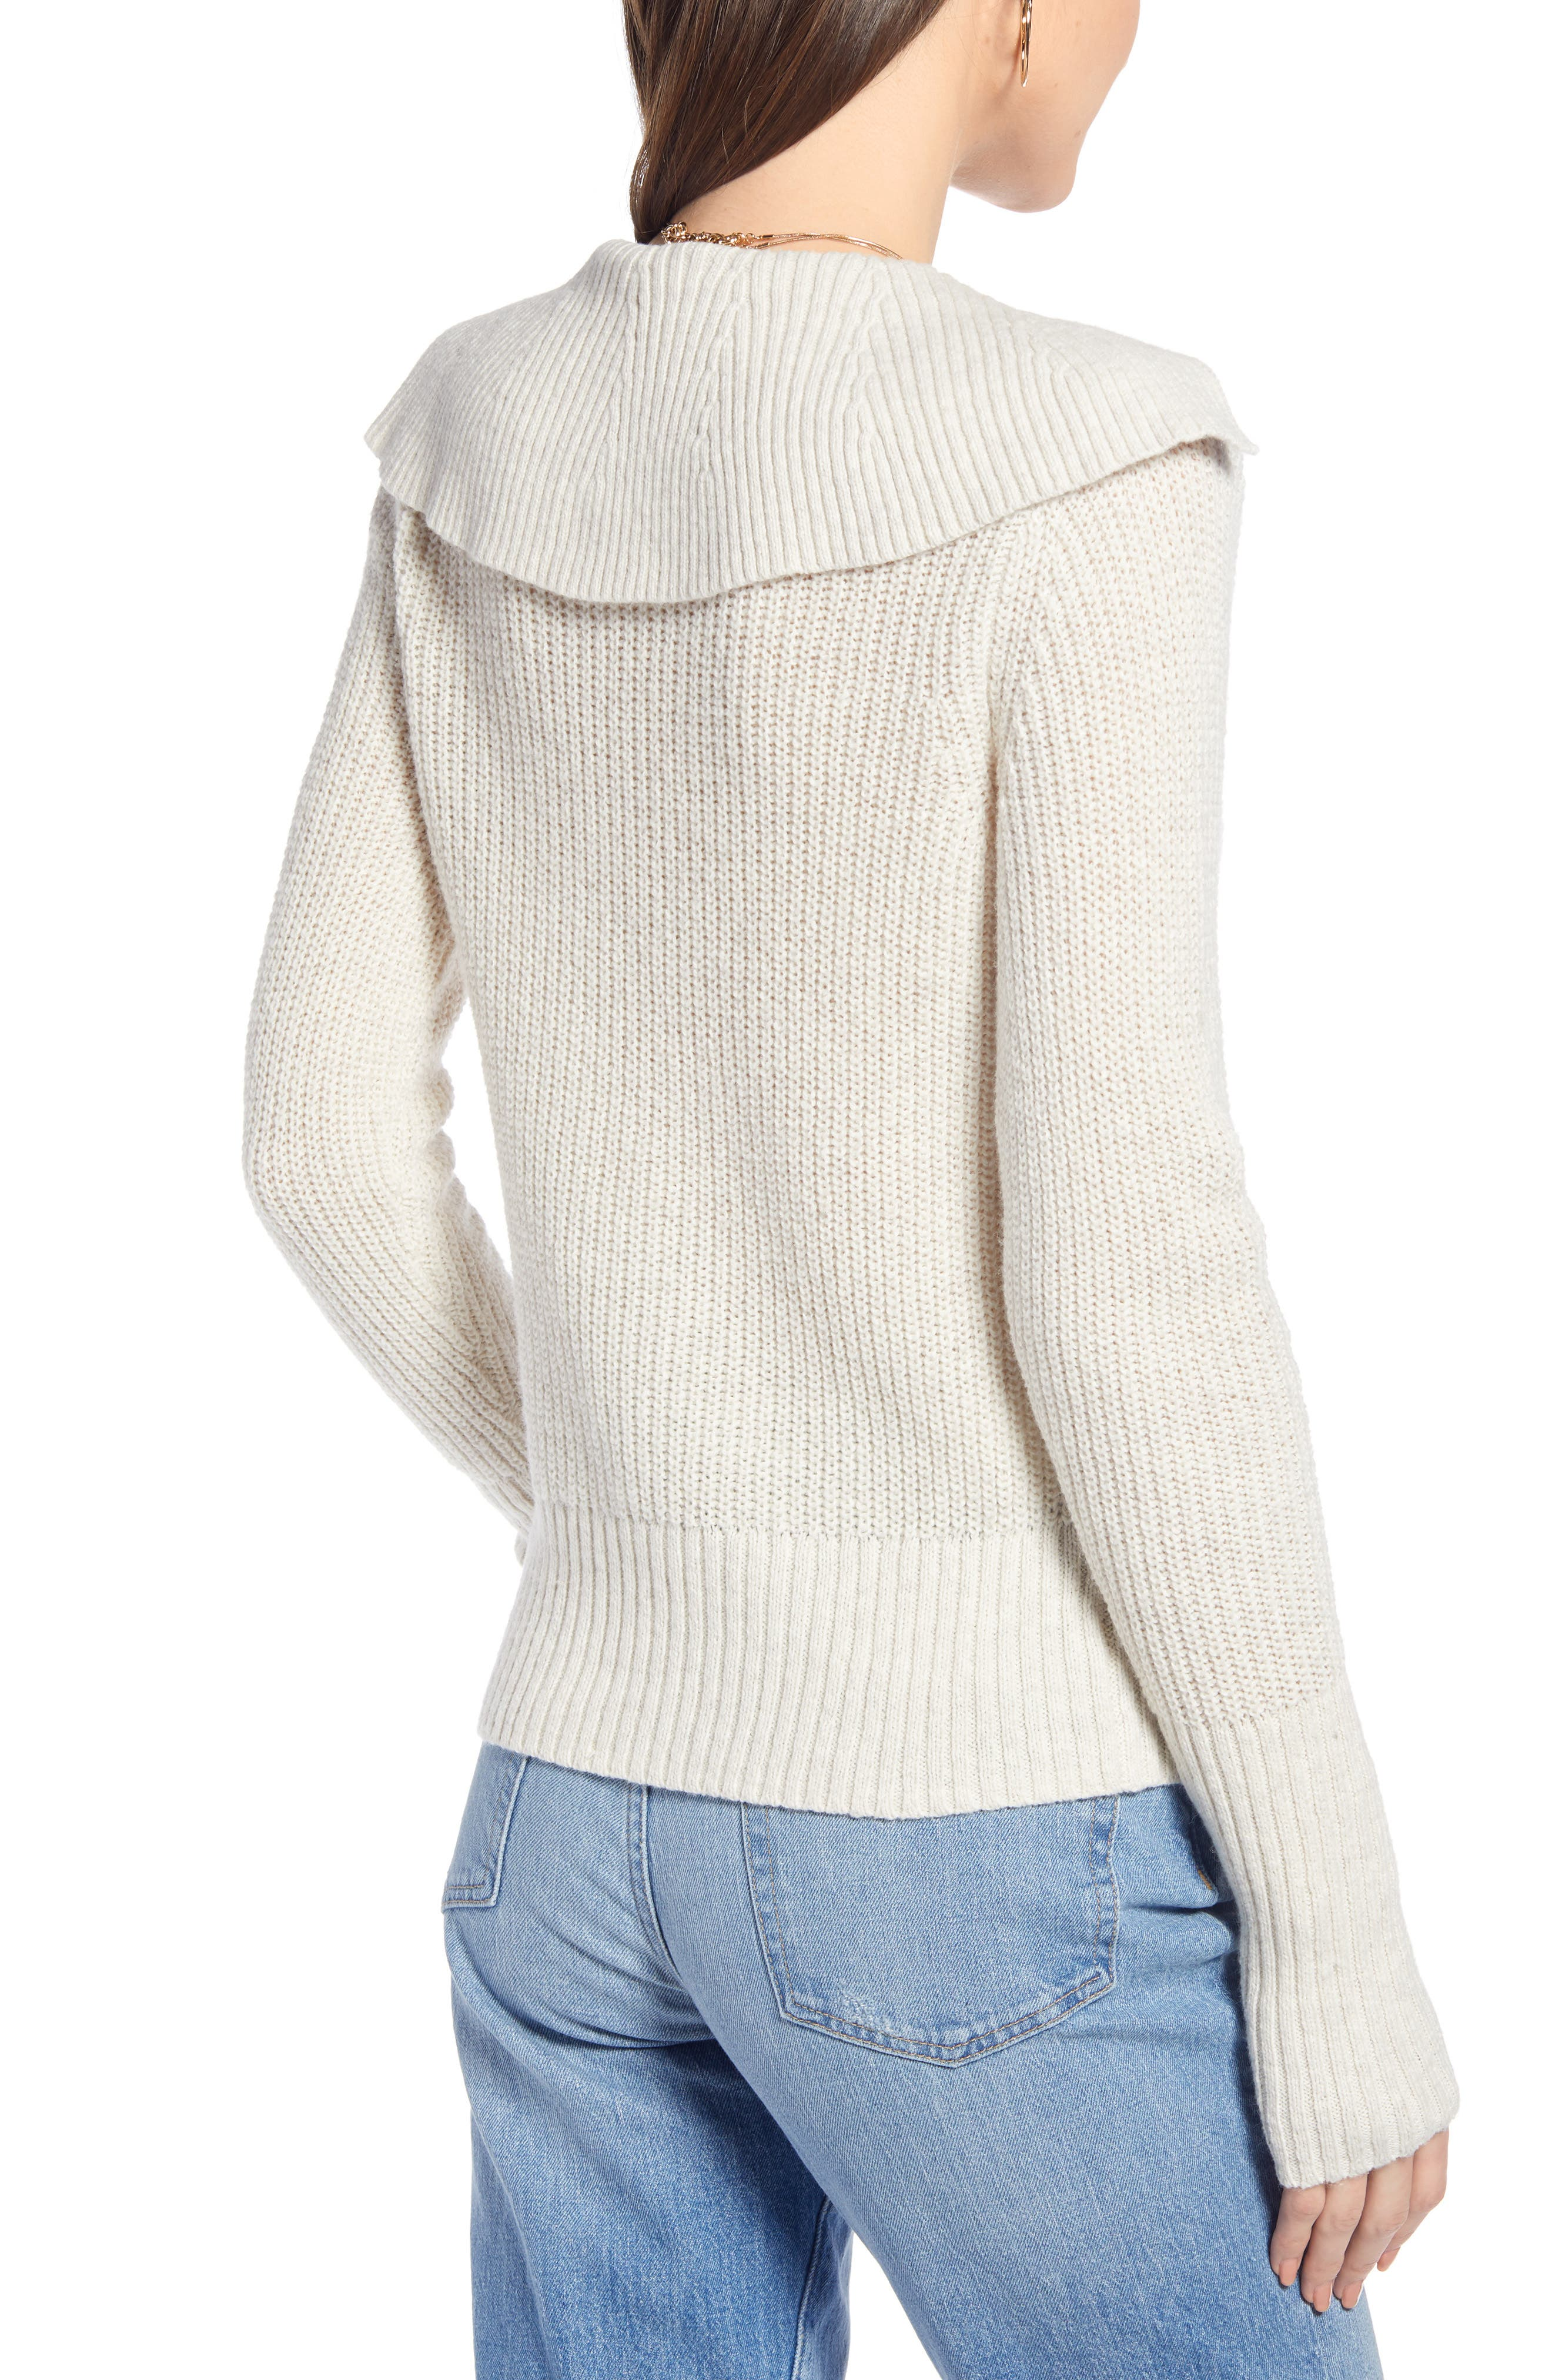 SOMETHING NAVY, V-Neck Polo Sweater, Alternate thumbnail 4, color, BEIGE OATMEAL LIGHT HEATHER